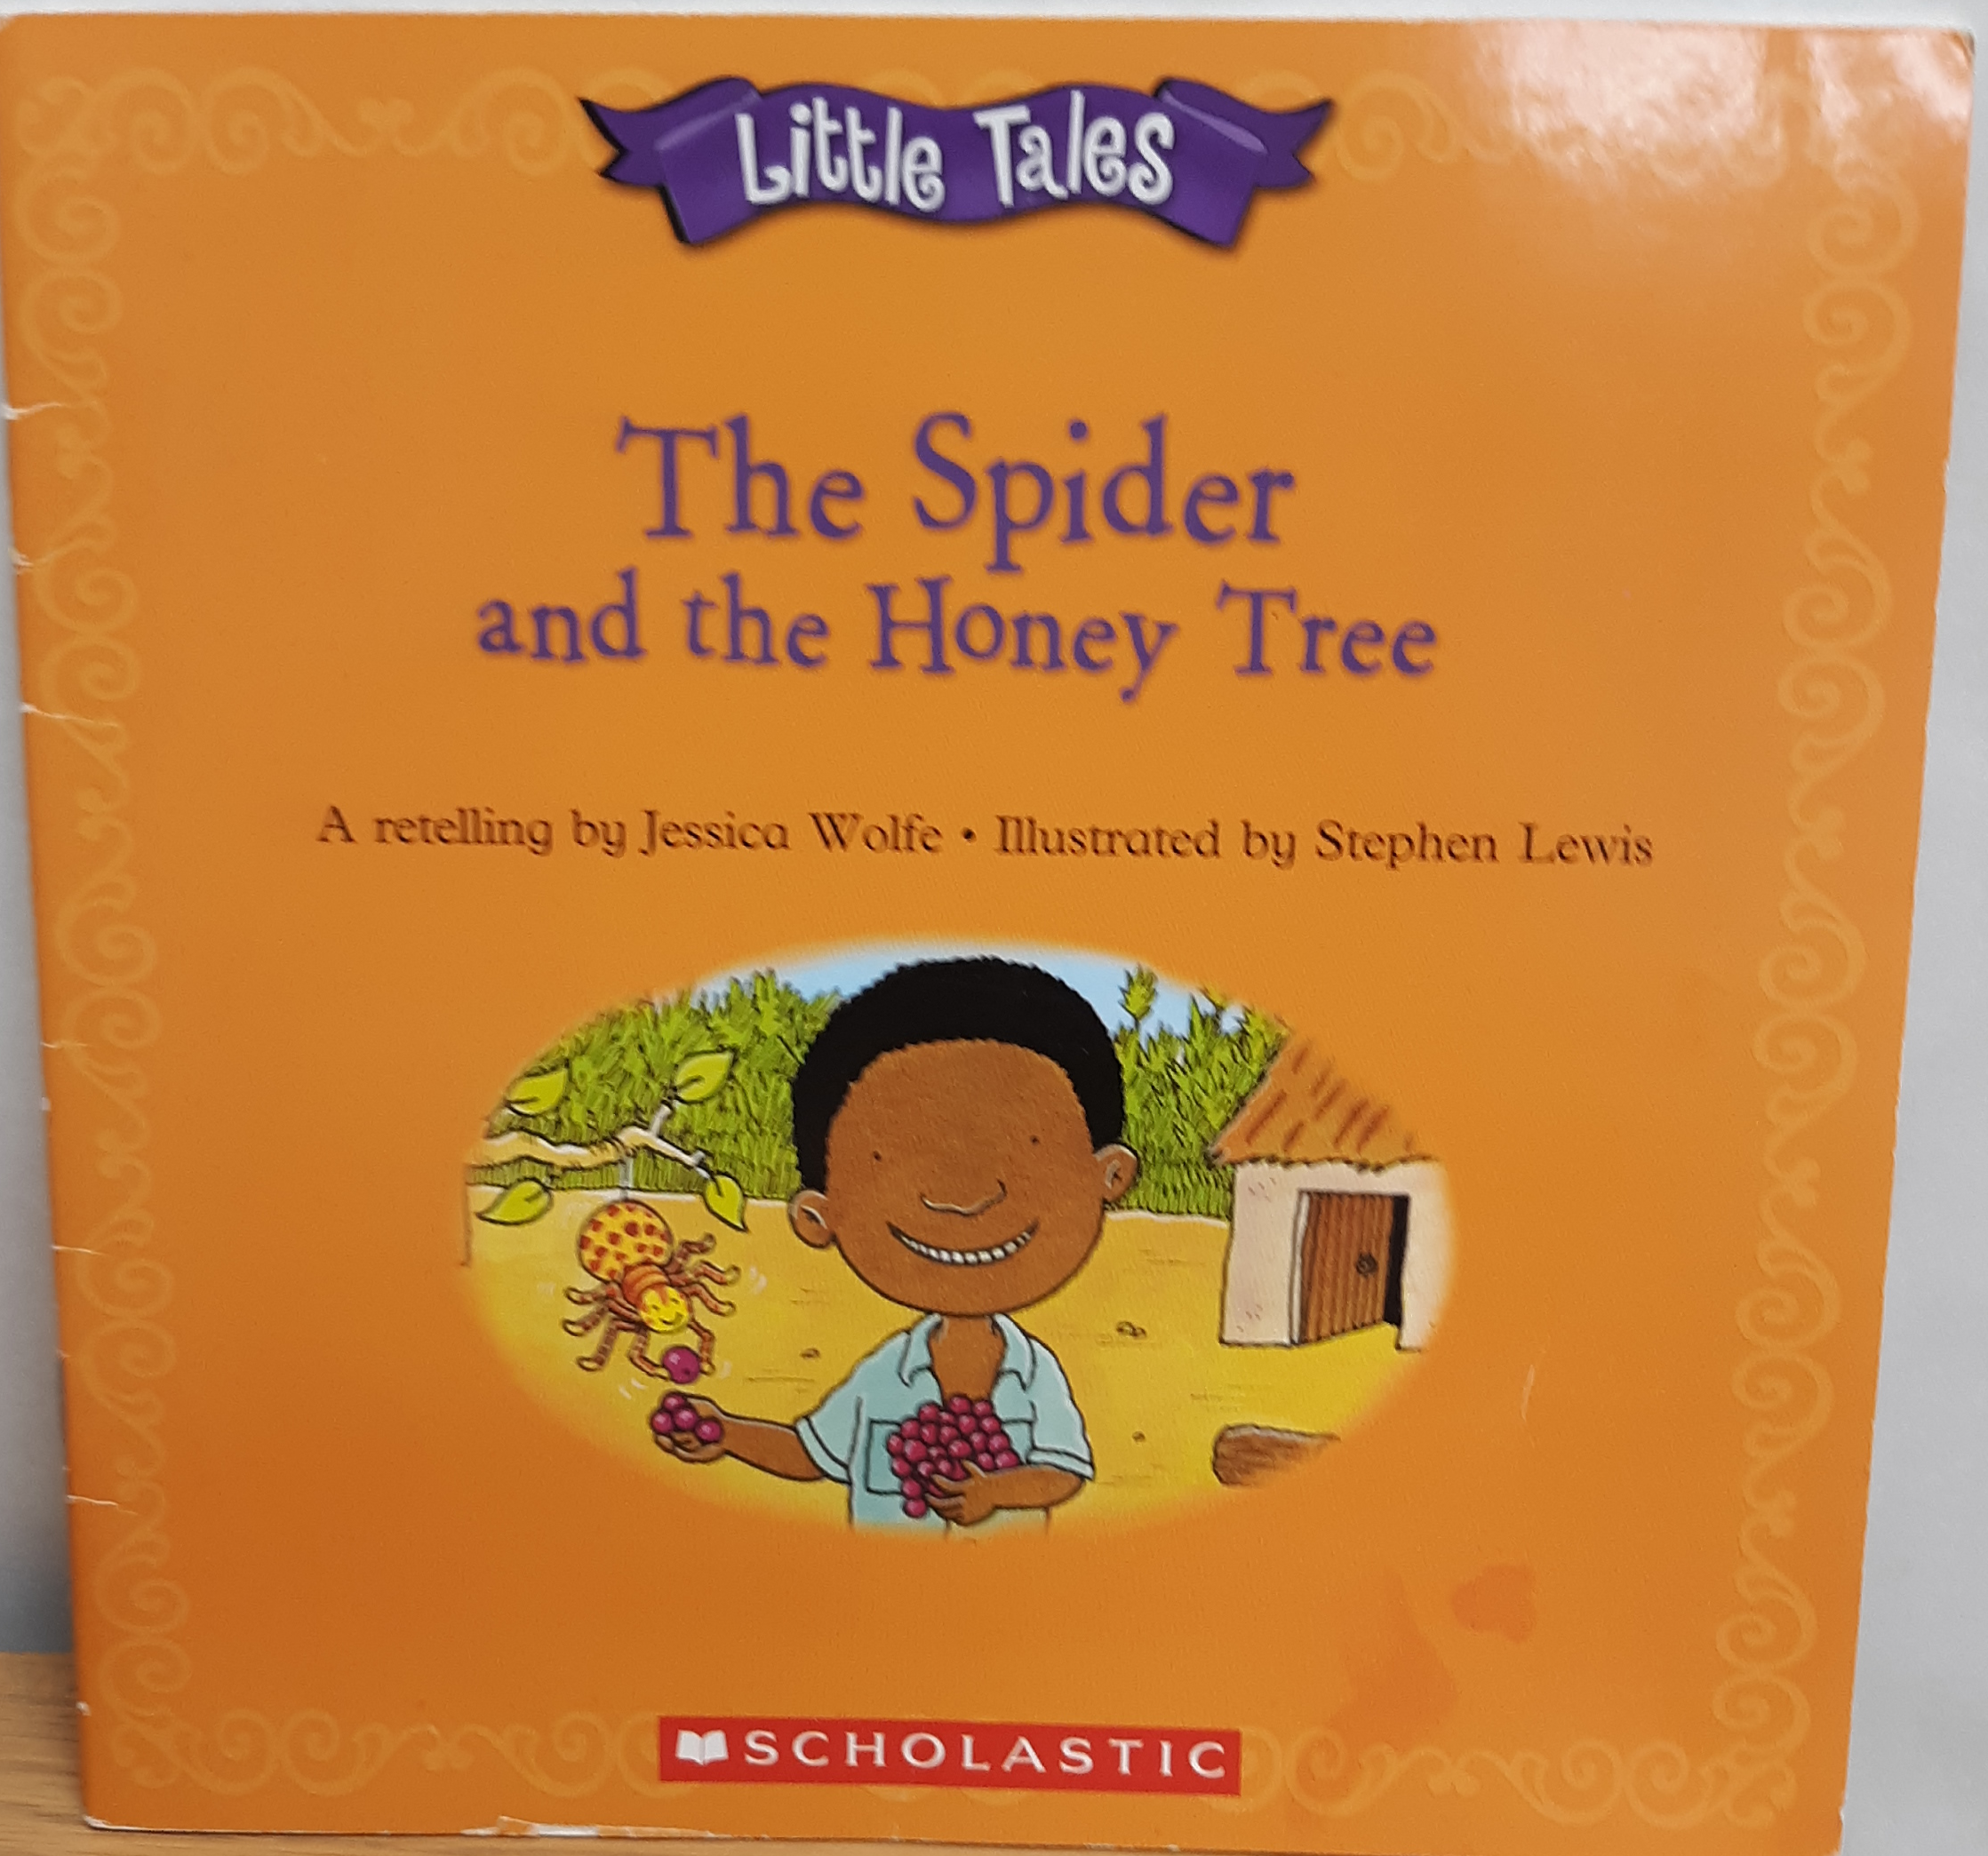 https://0201.nccdn.net/1_2/000/000/104/bf0/the-spider-and-the-honey-tree-.png